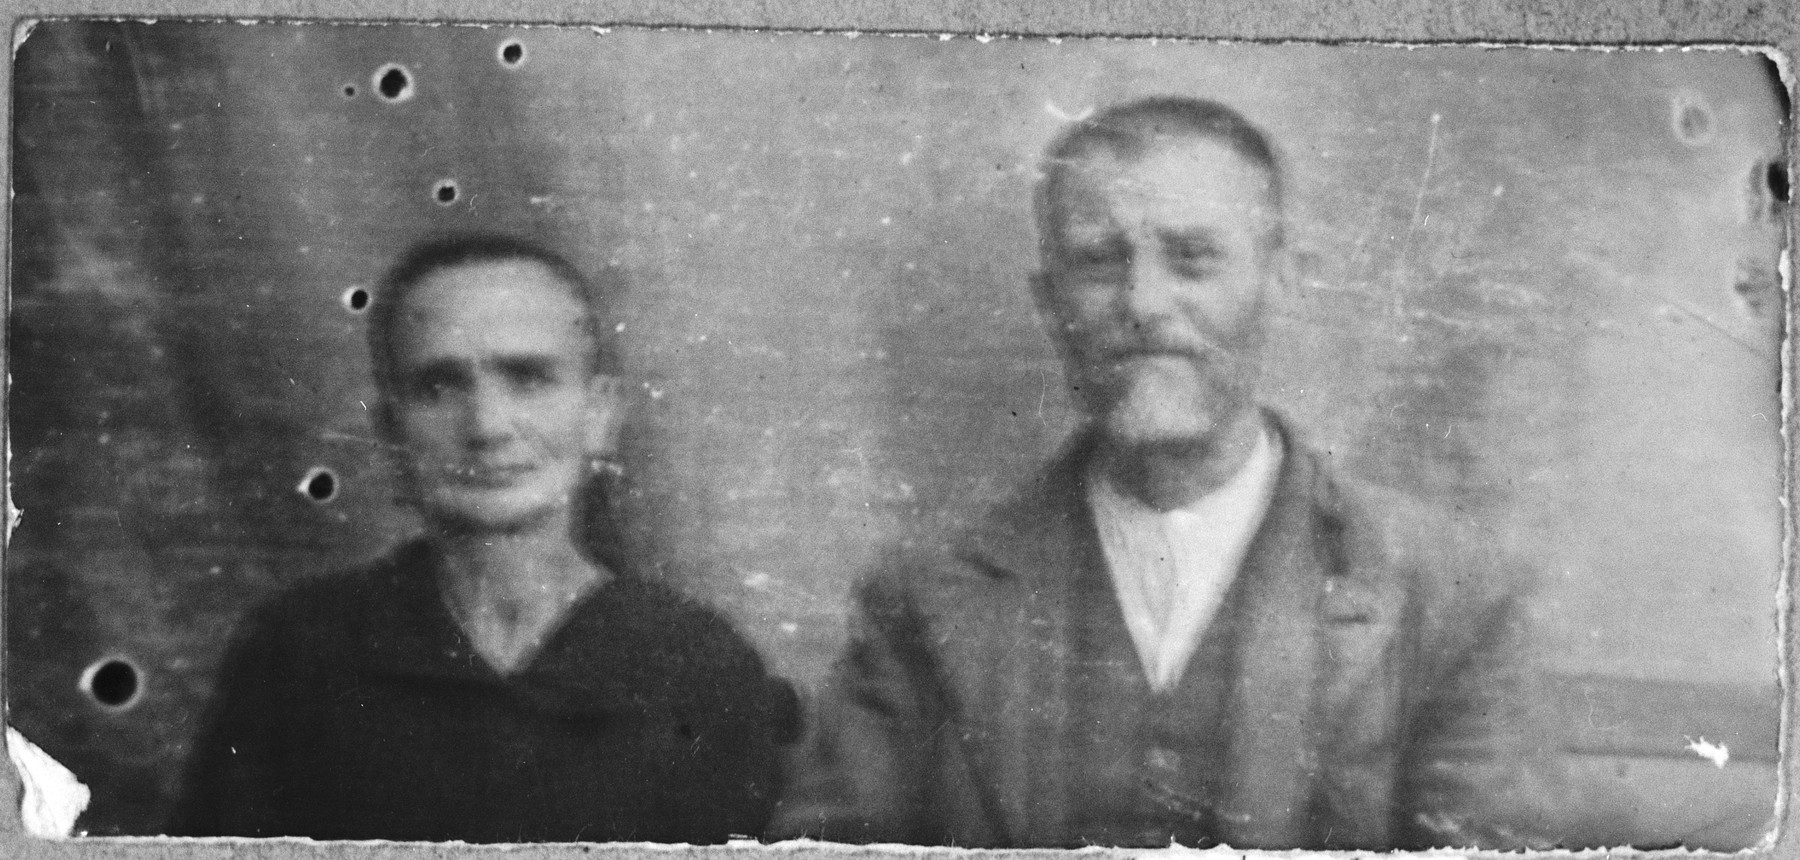 Portrait of Aron Koen, son of Avram, and Aron's wife, Reina.  Aron was a second-hand dealer.  They lived at Mitrovatska 3-5 in Bitola.